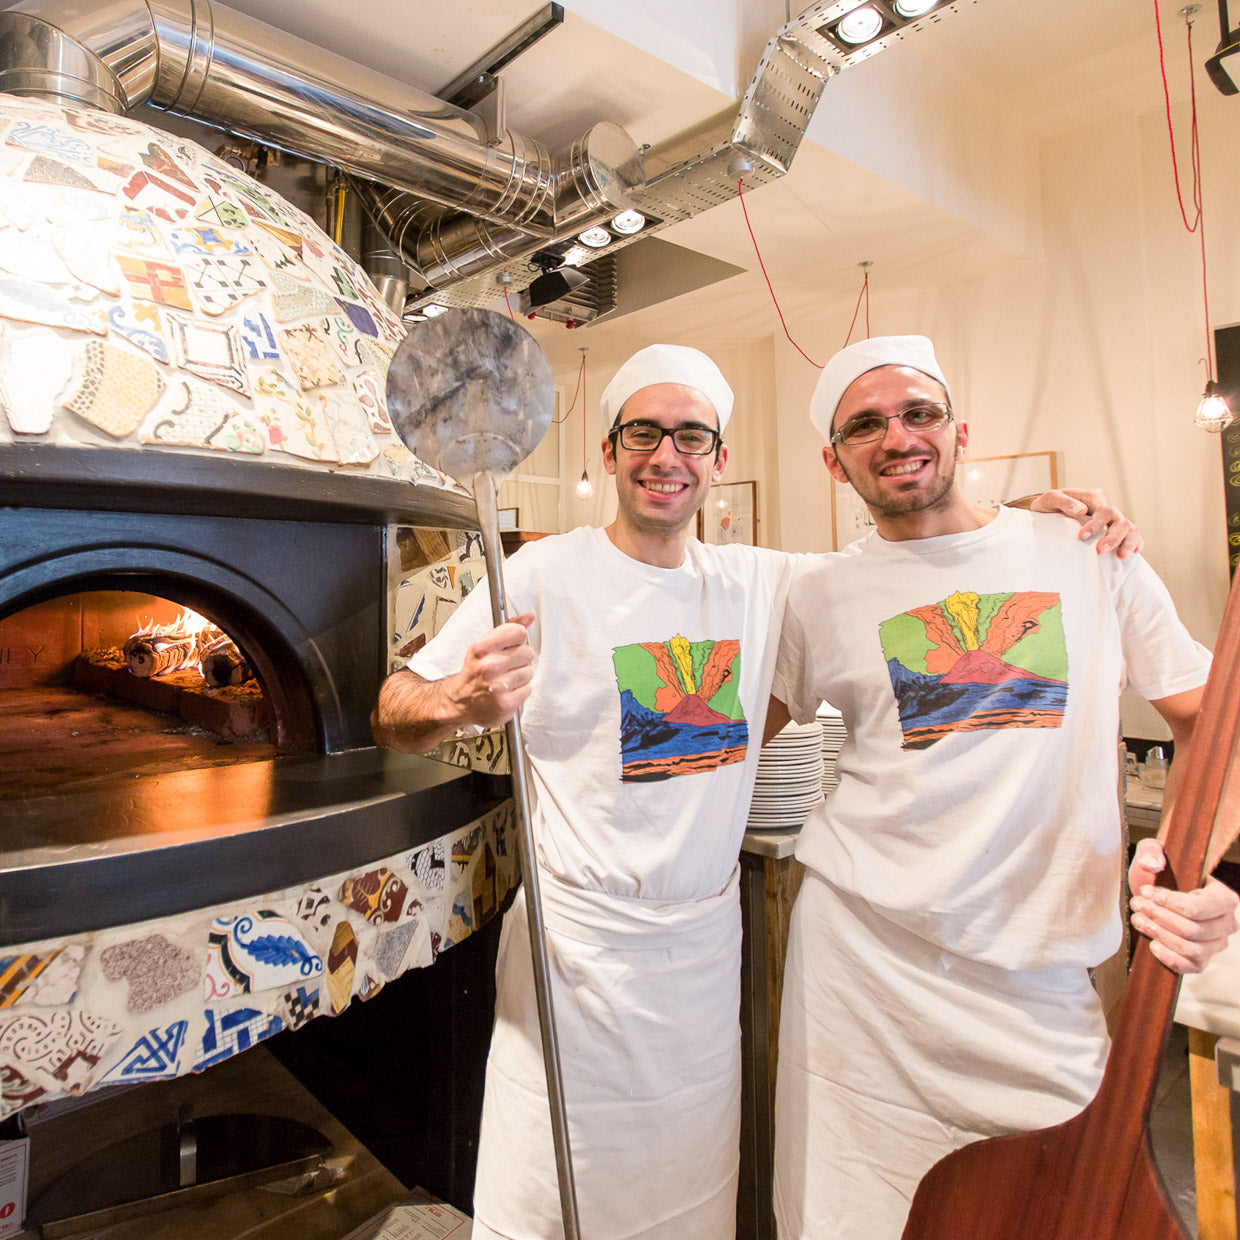 Commercial pizza oven - pizza pilgrims